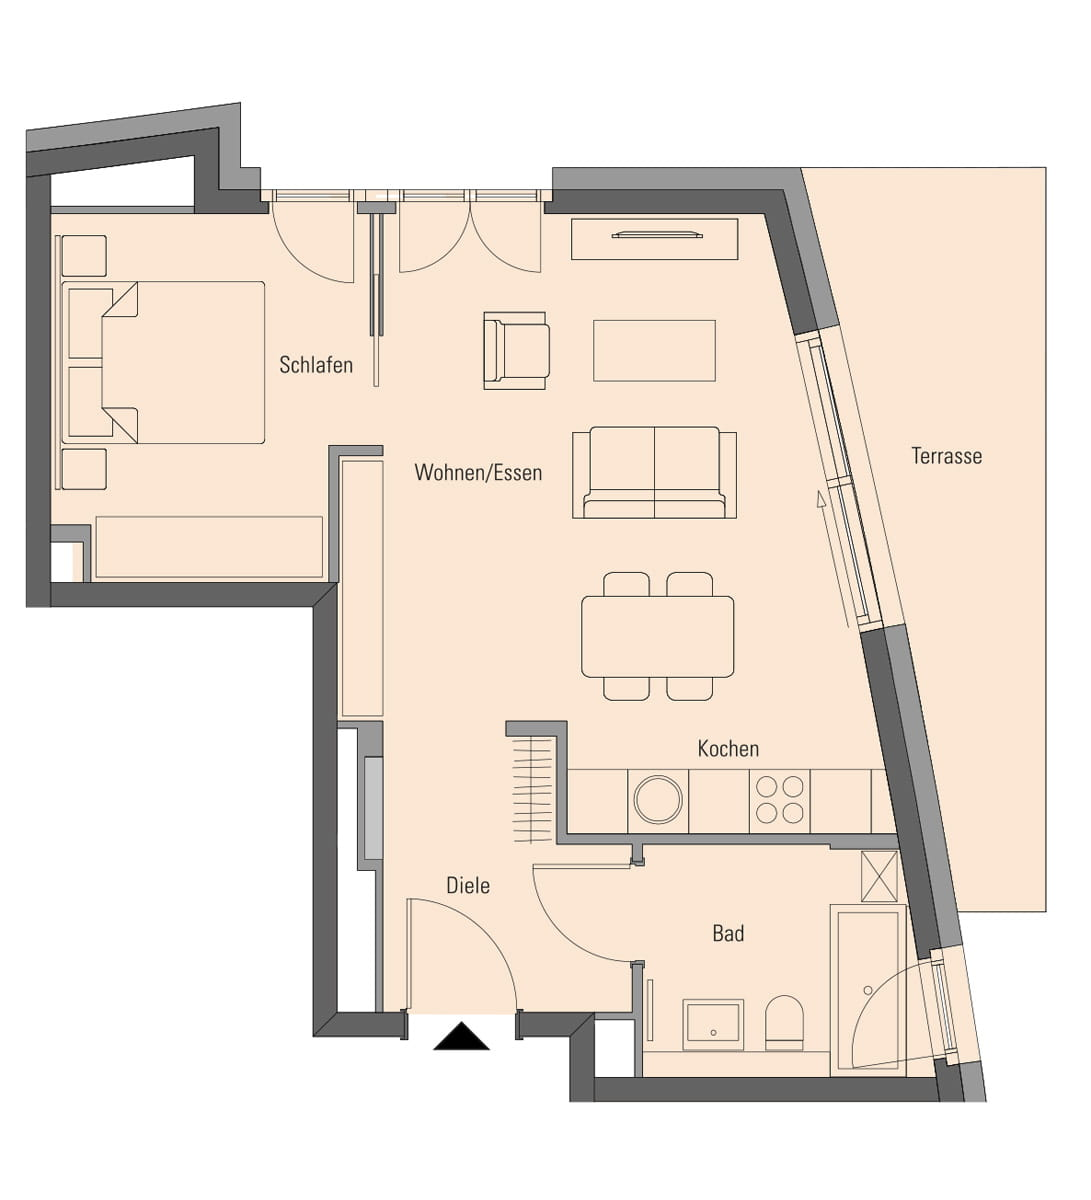 Apartment 2.0.1, 2 Rooms, 56.1 m²